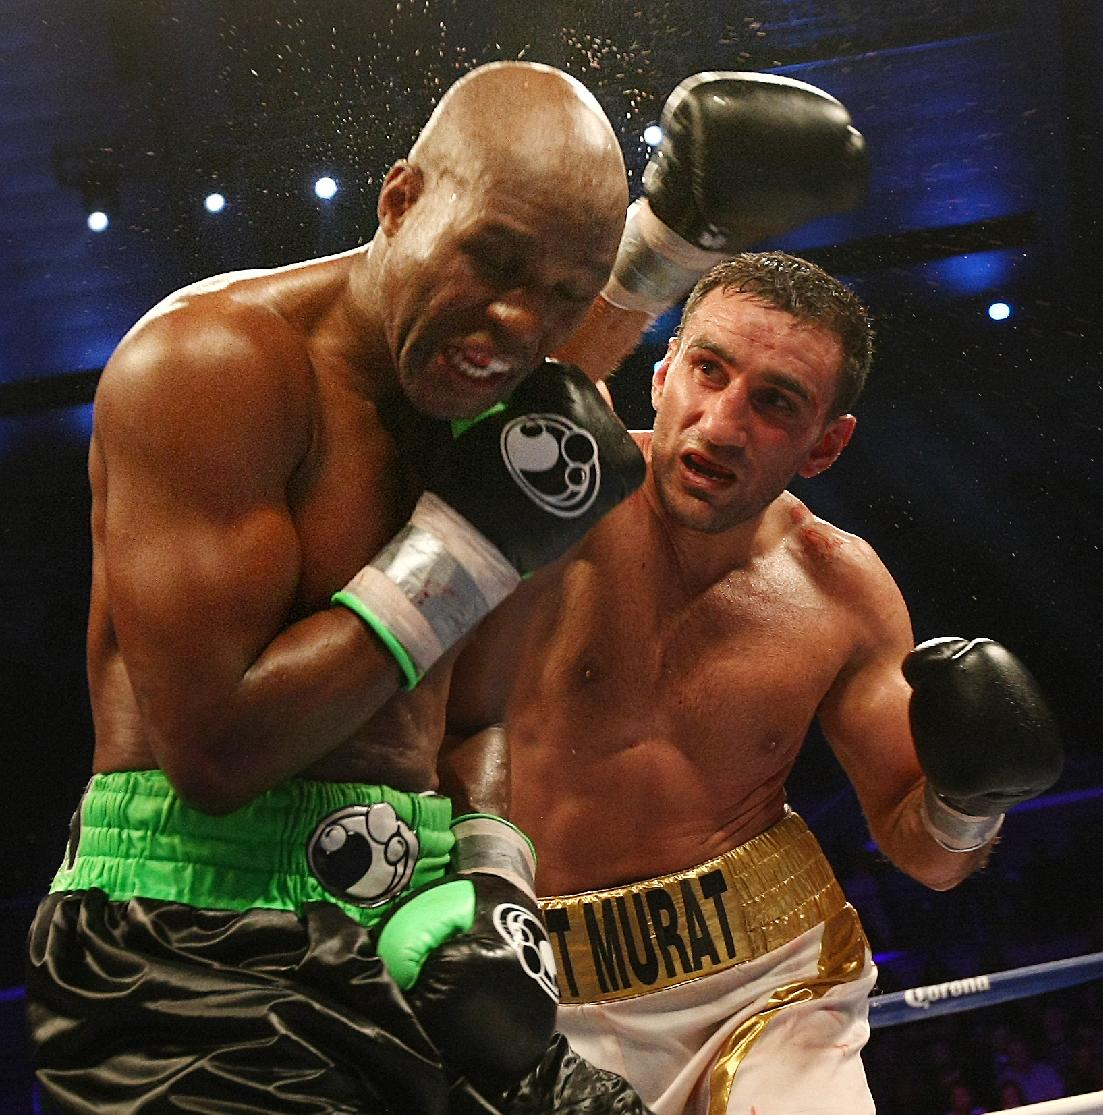 Karo Murat, right, of Germany lands a punch on Bernard Hopkins, of Philadelphia, PA lands a punch on  during the ninth round of IBF Light Heavyweight Title in Atlantic City, N.J. on Saturday, Oct. 26, 2013. Hopkins won by unanimous decision after 12 rounds